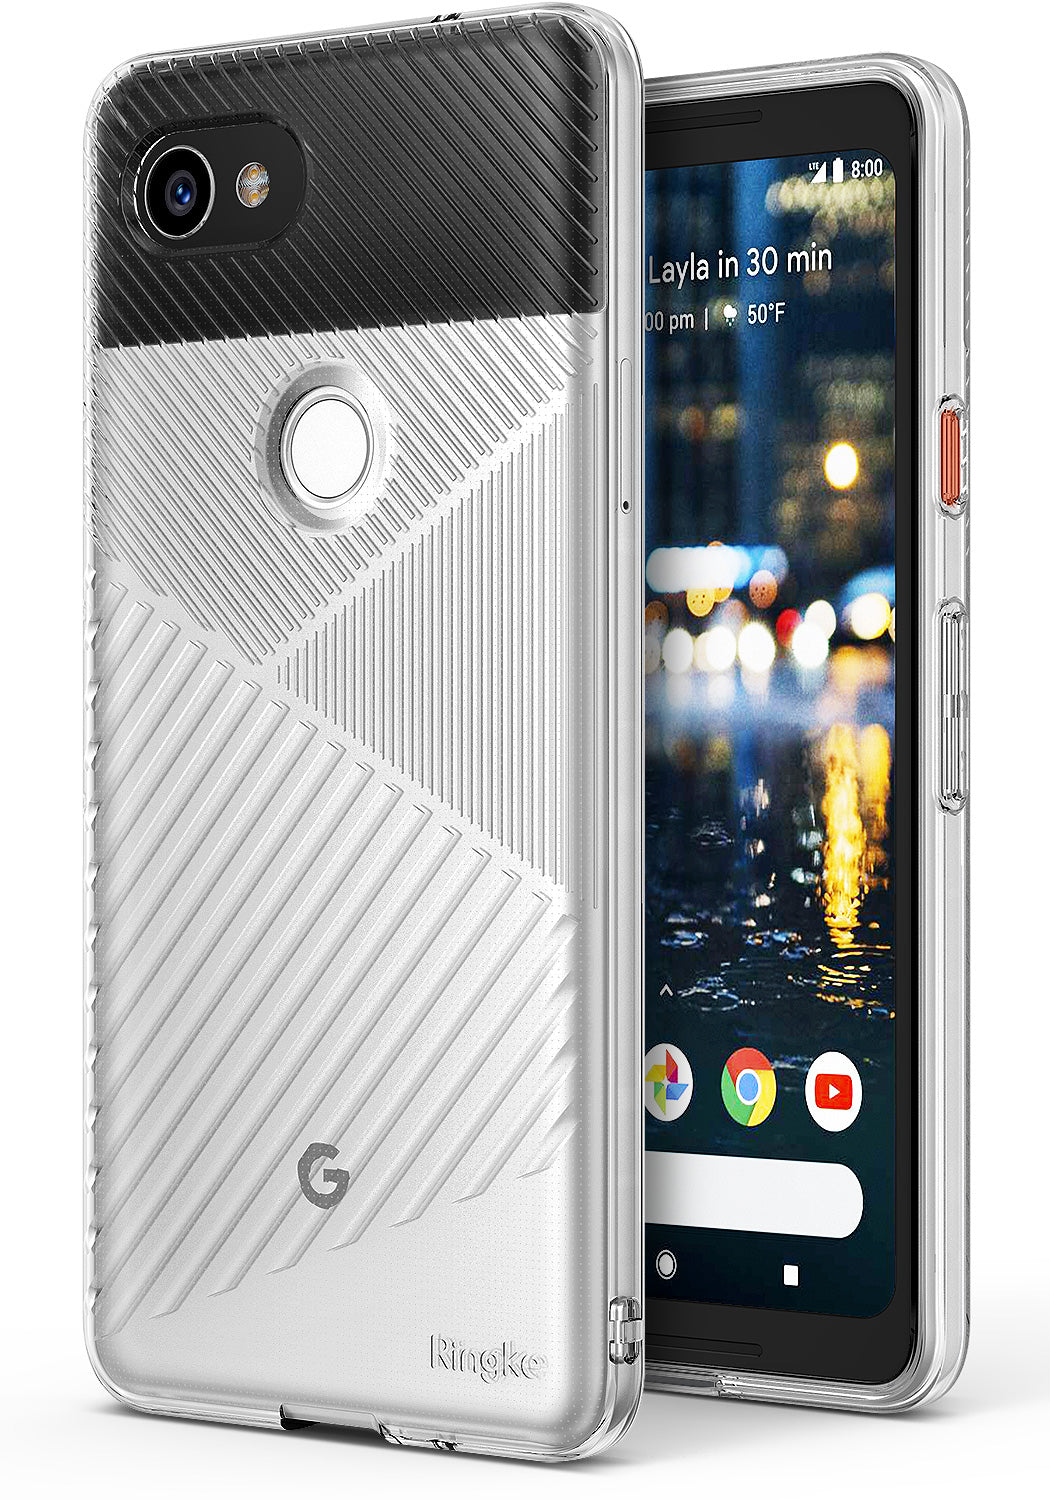 ringke bevel designed thin lightweight tpu case cover for google pixel 2 xl main clear